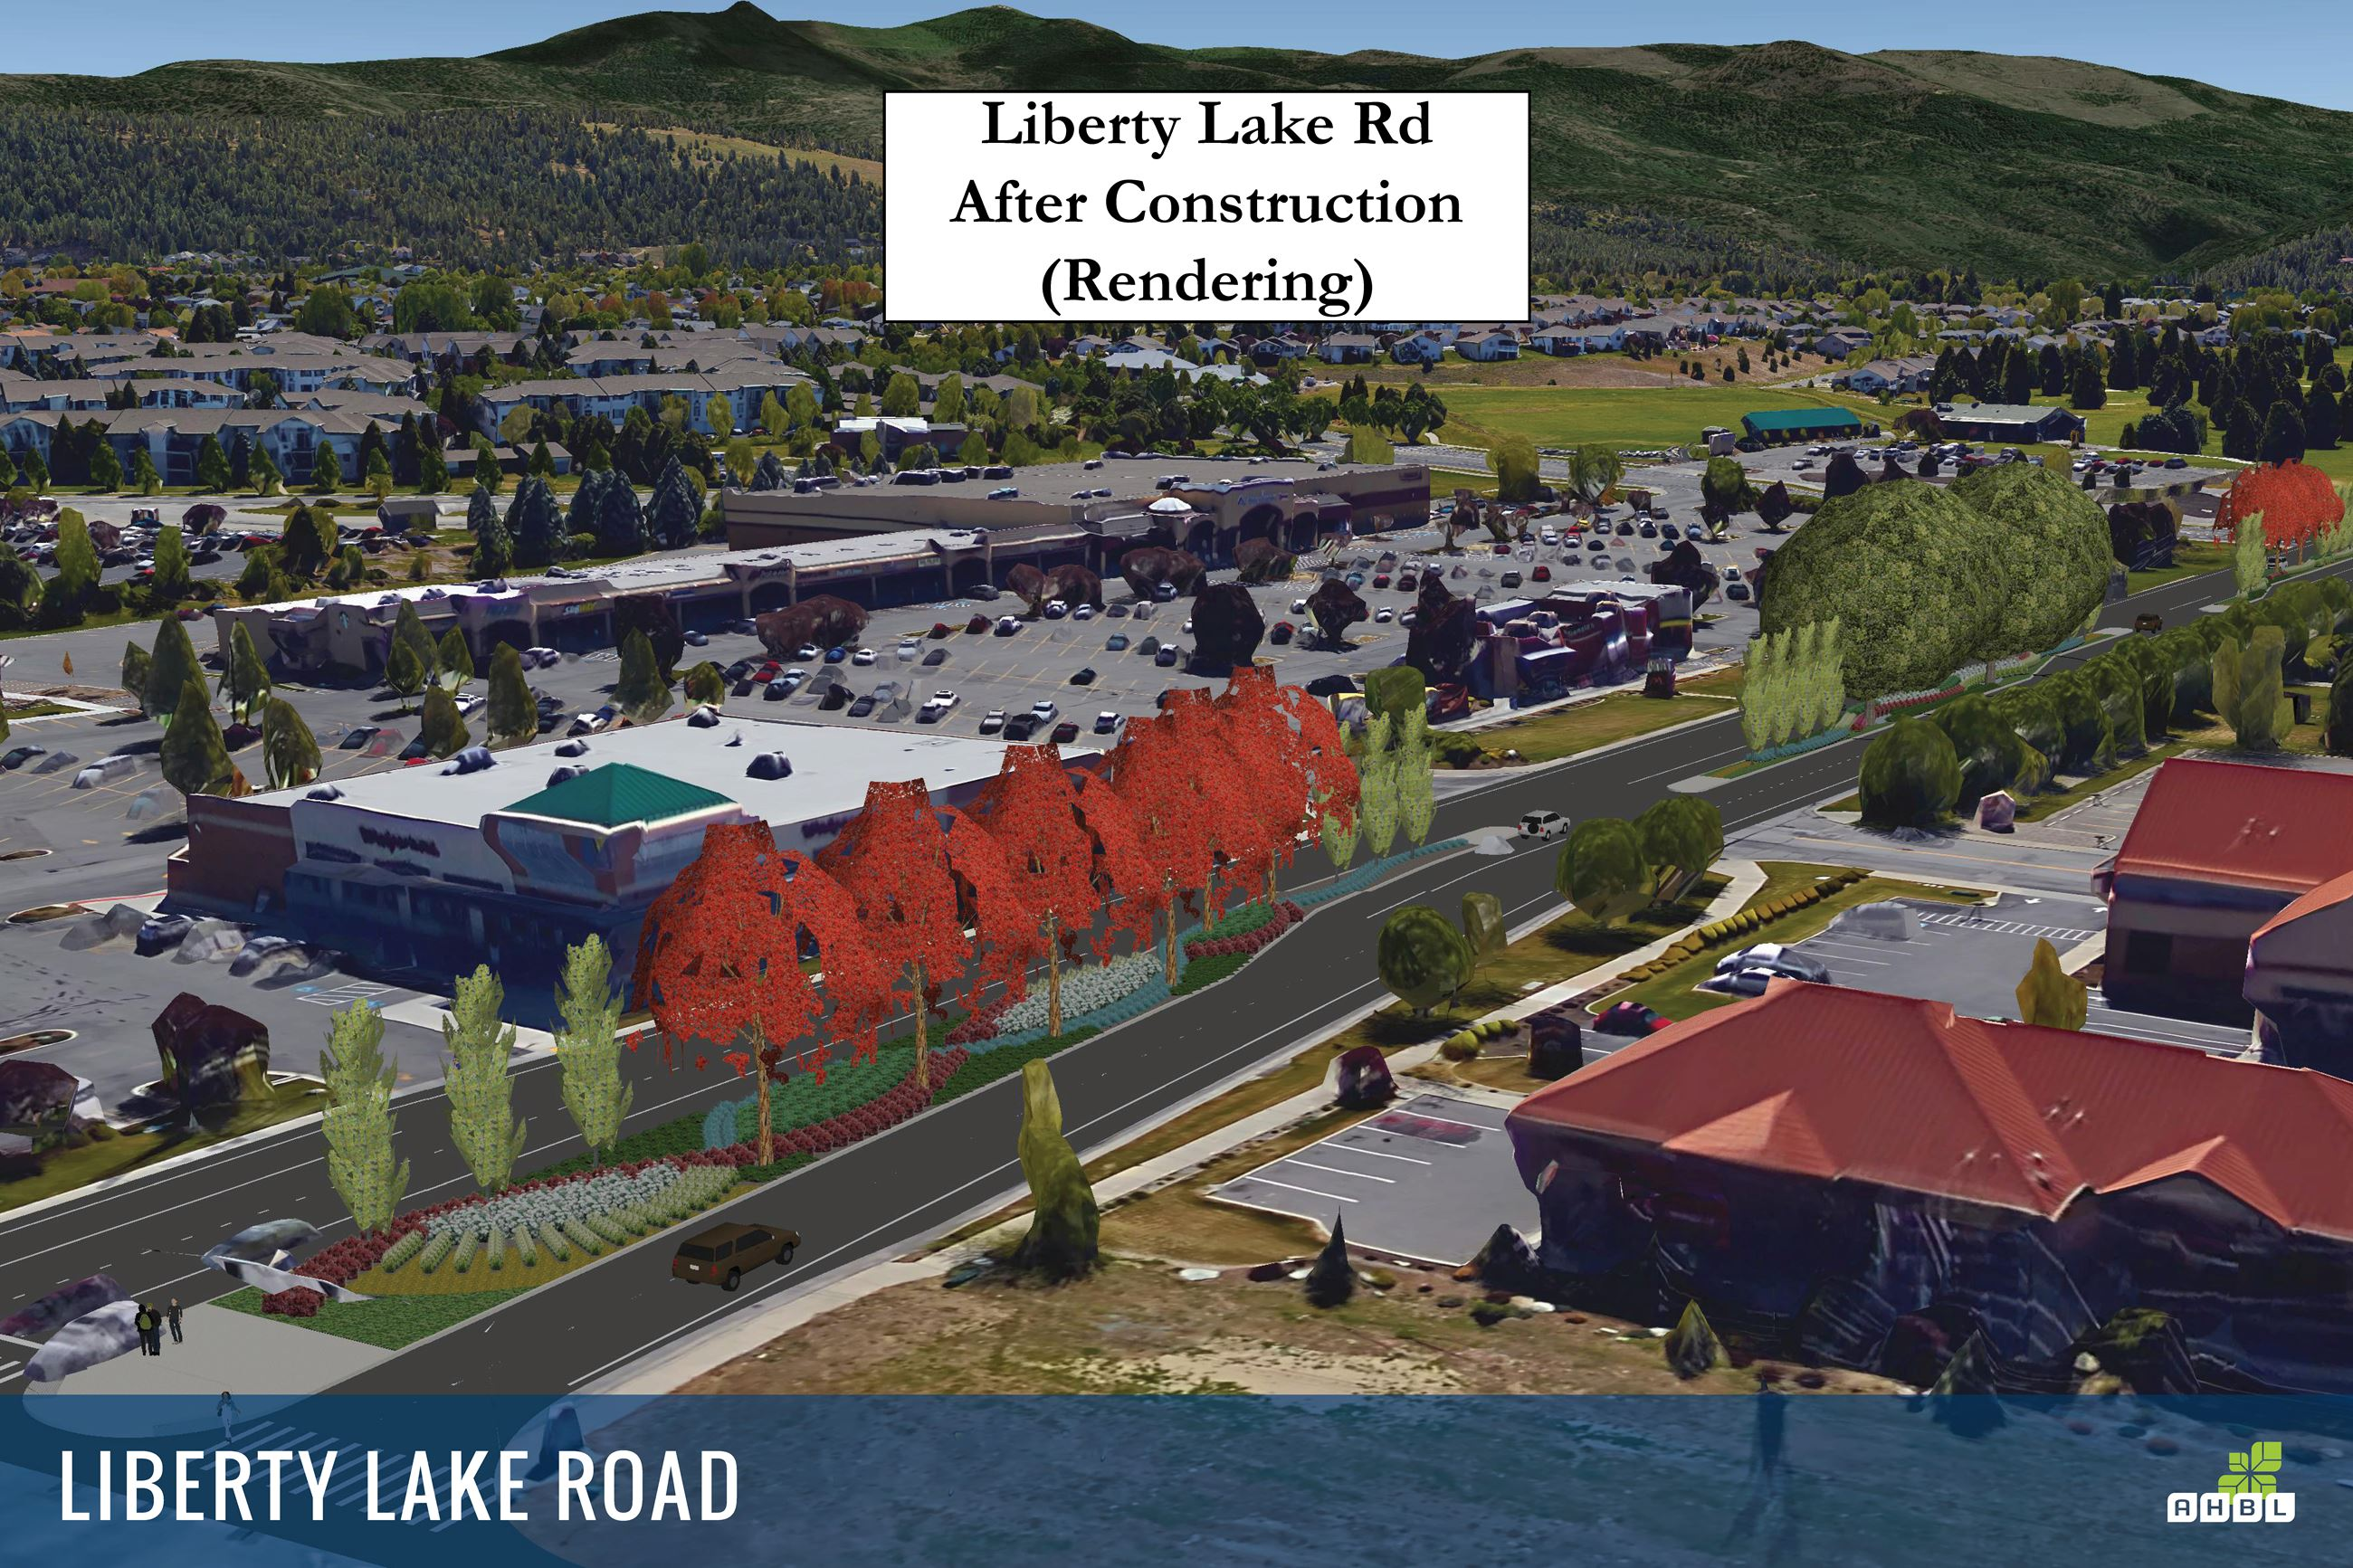 Liberty Lake Road After Construction (Rendering)